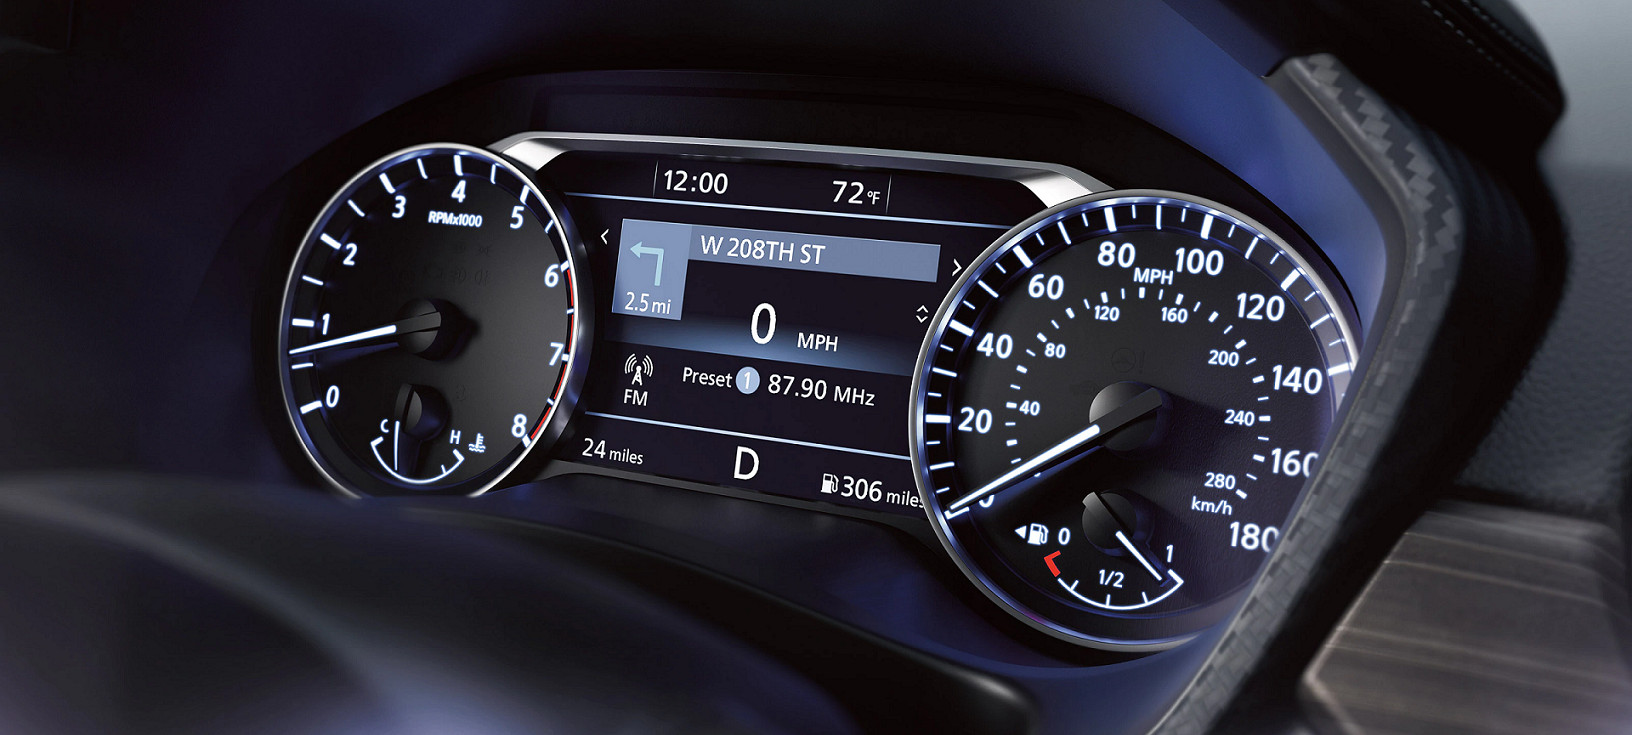 Instrument Panel in the 2020 Nissan Altima